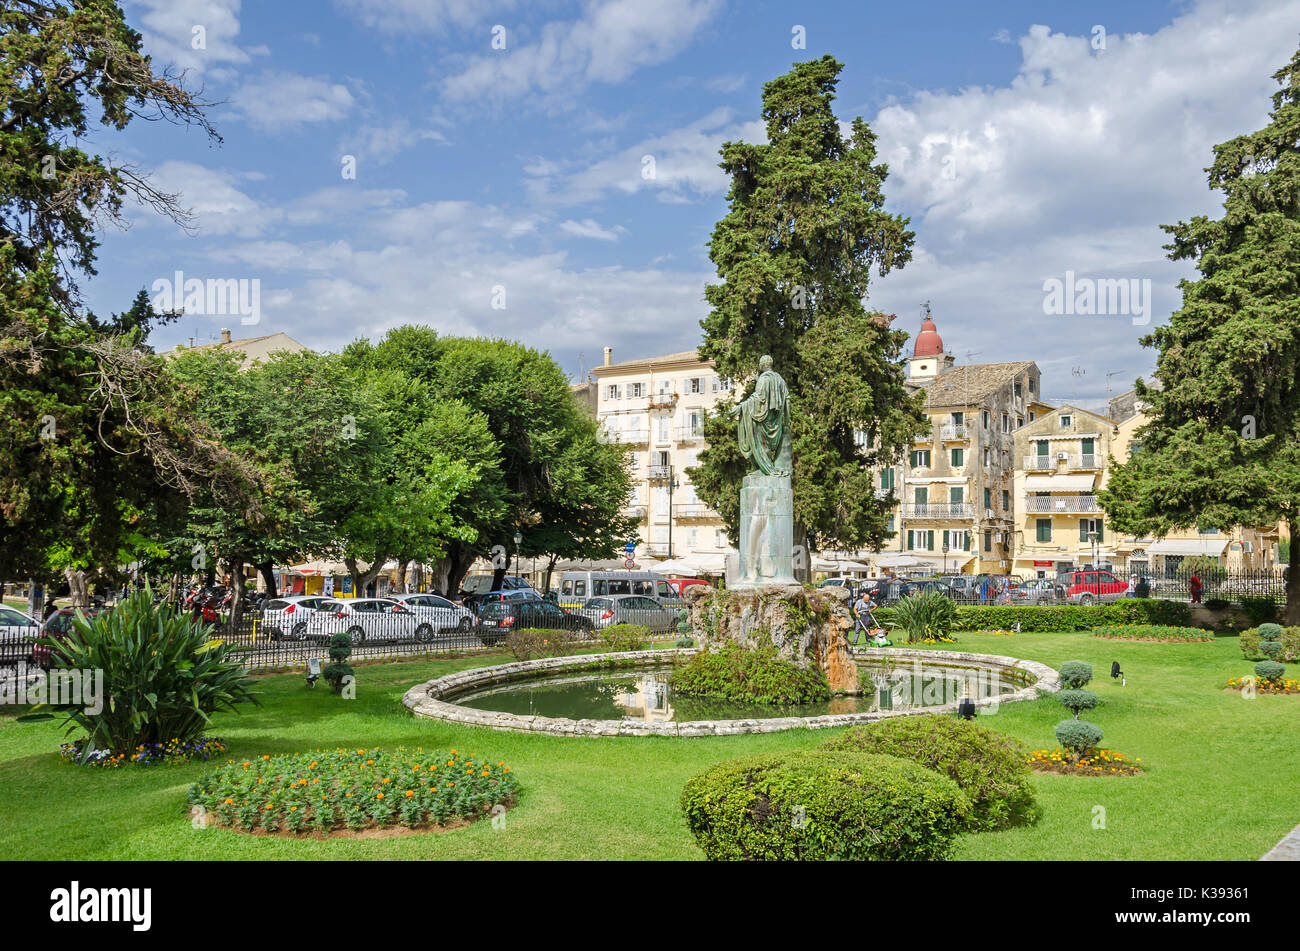 Corfu, Greece - June 7, 2017: Garden of the former Residence of the British Lord High Commissioner with the Statue of Sir Frederick Adam by Pavlos Pro - Stock Image